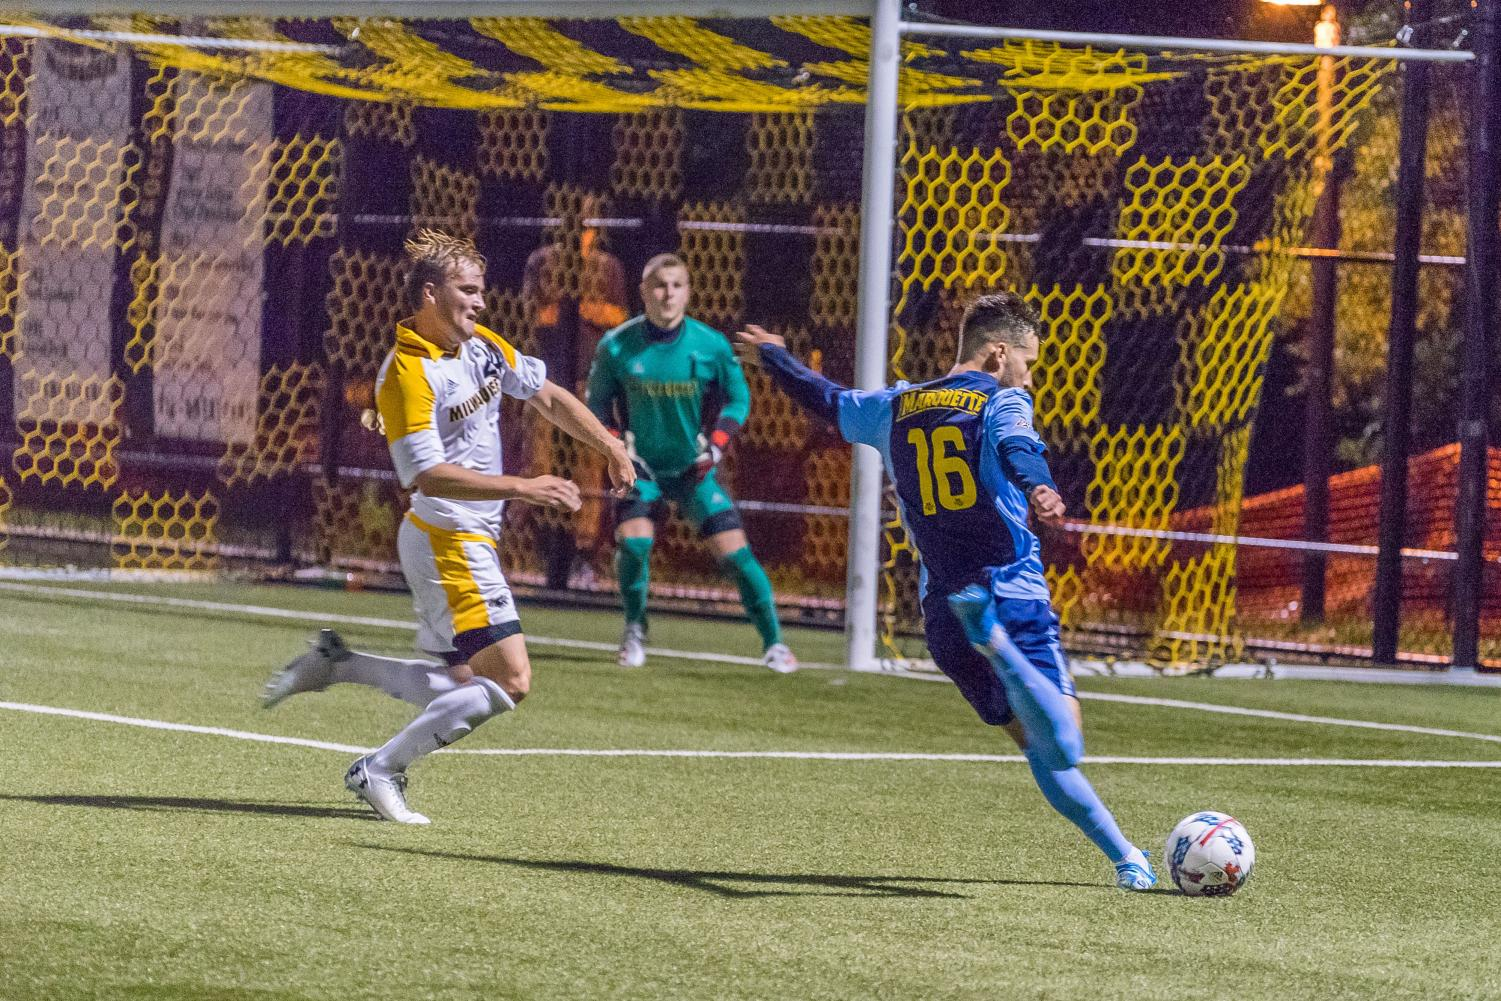 Marquette's Josh Coan (16) attempts a goal in the Golden Eagles' loss to UWM at Engelmann Stadium.